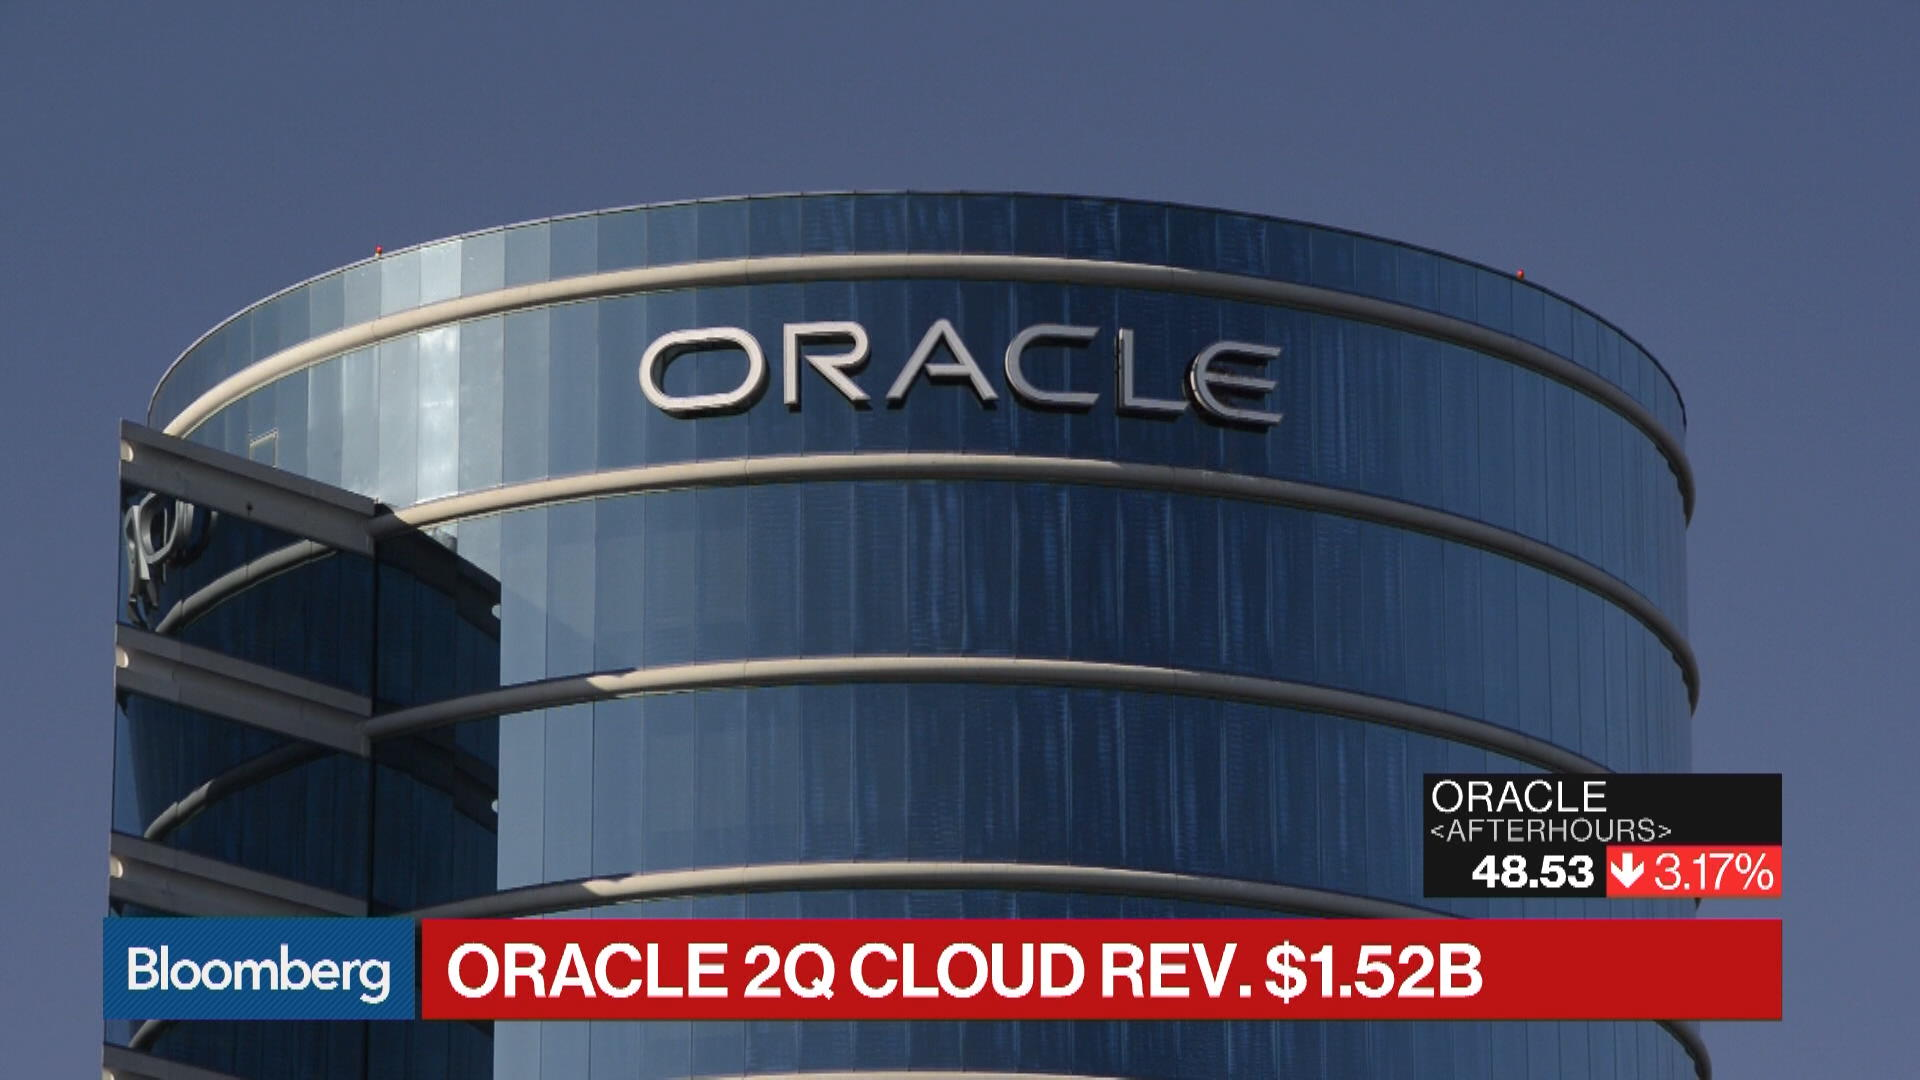 Orcl Stock Quote Orclnew York Stock Quote  Oracle Corp  Bloomberg Markets